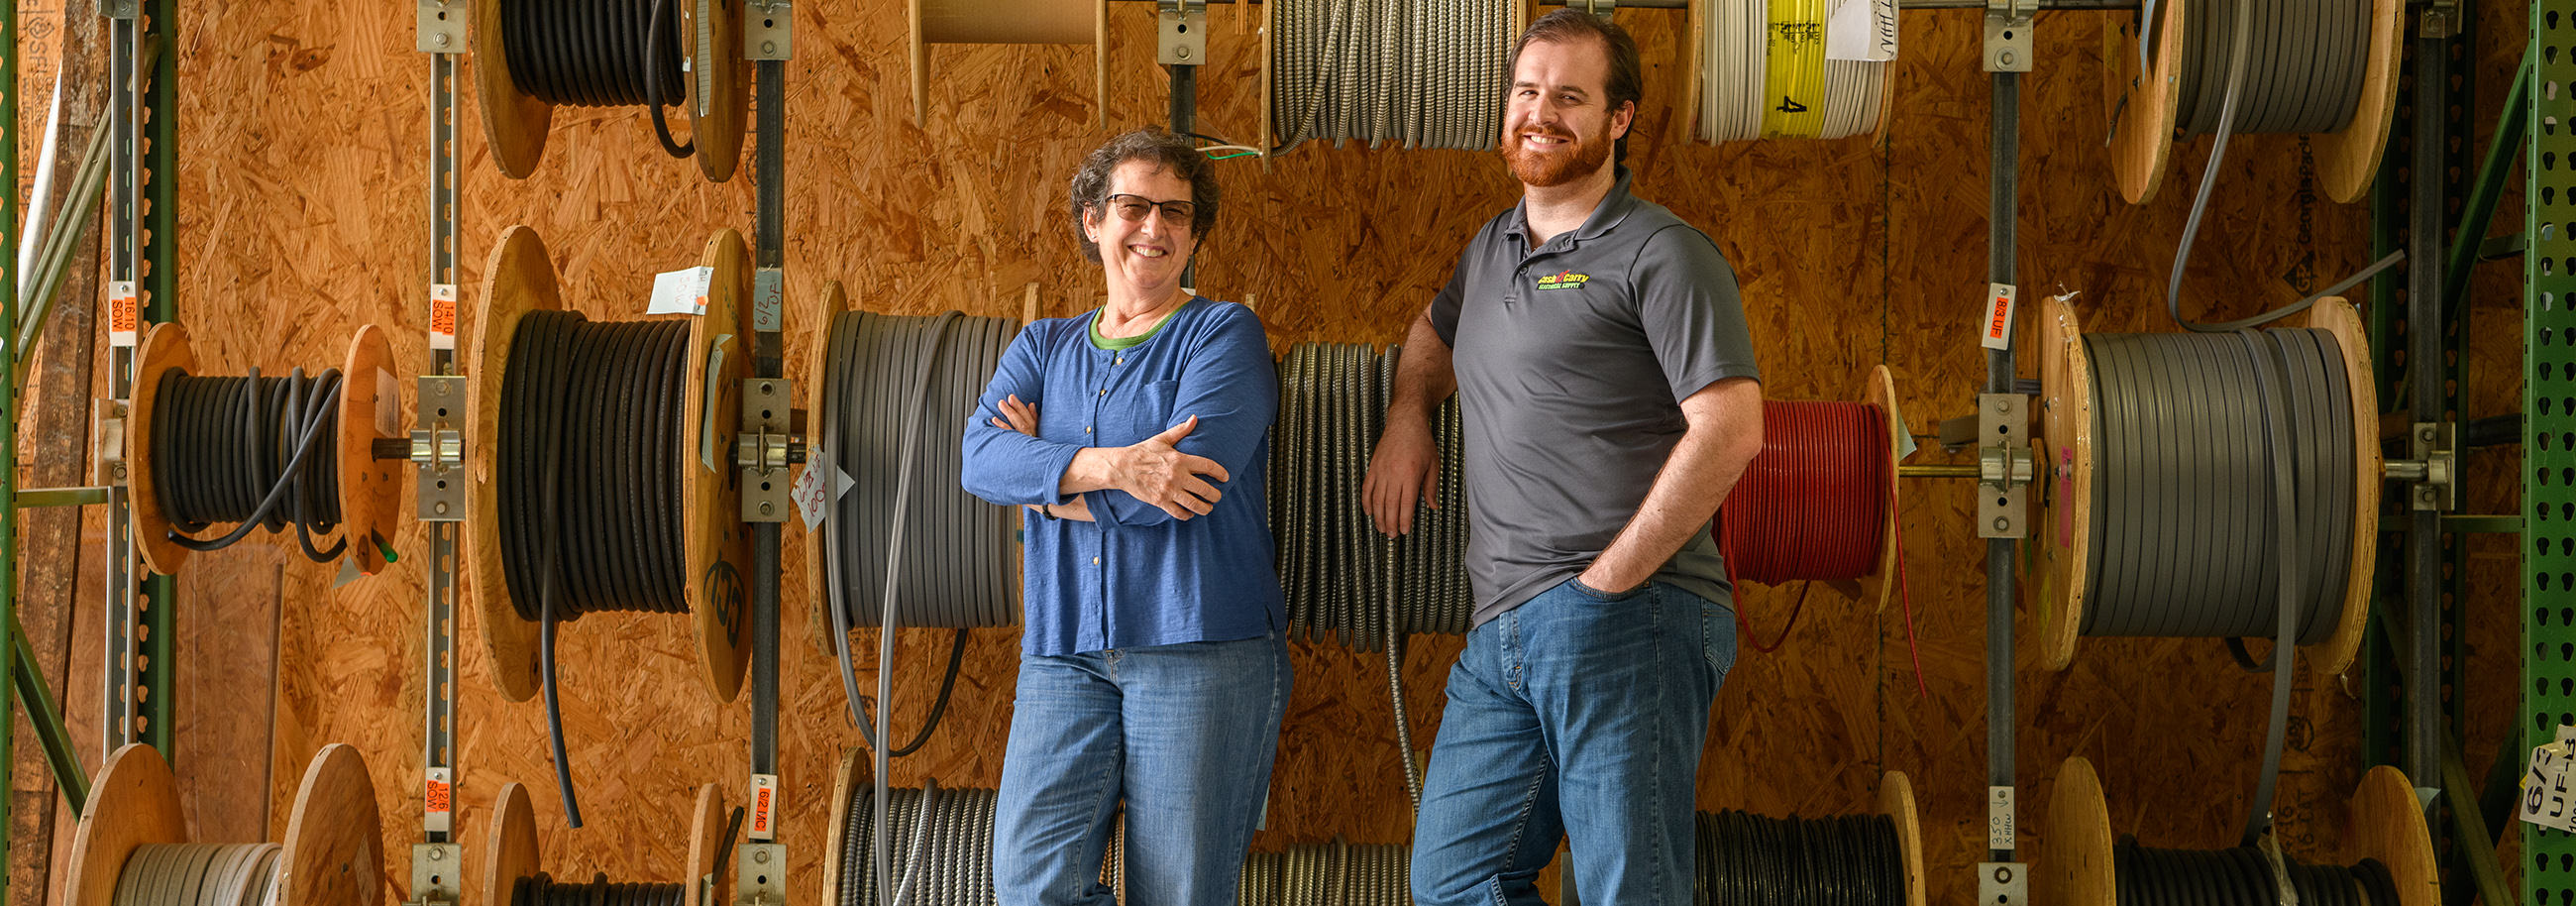 Jeanne and Eric Bomberger own Cash & Carry Electrical Supplies, Inc., in Quarryville, Pa.